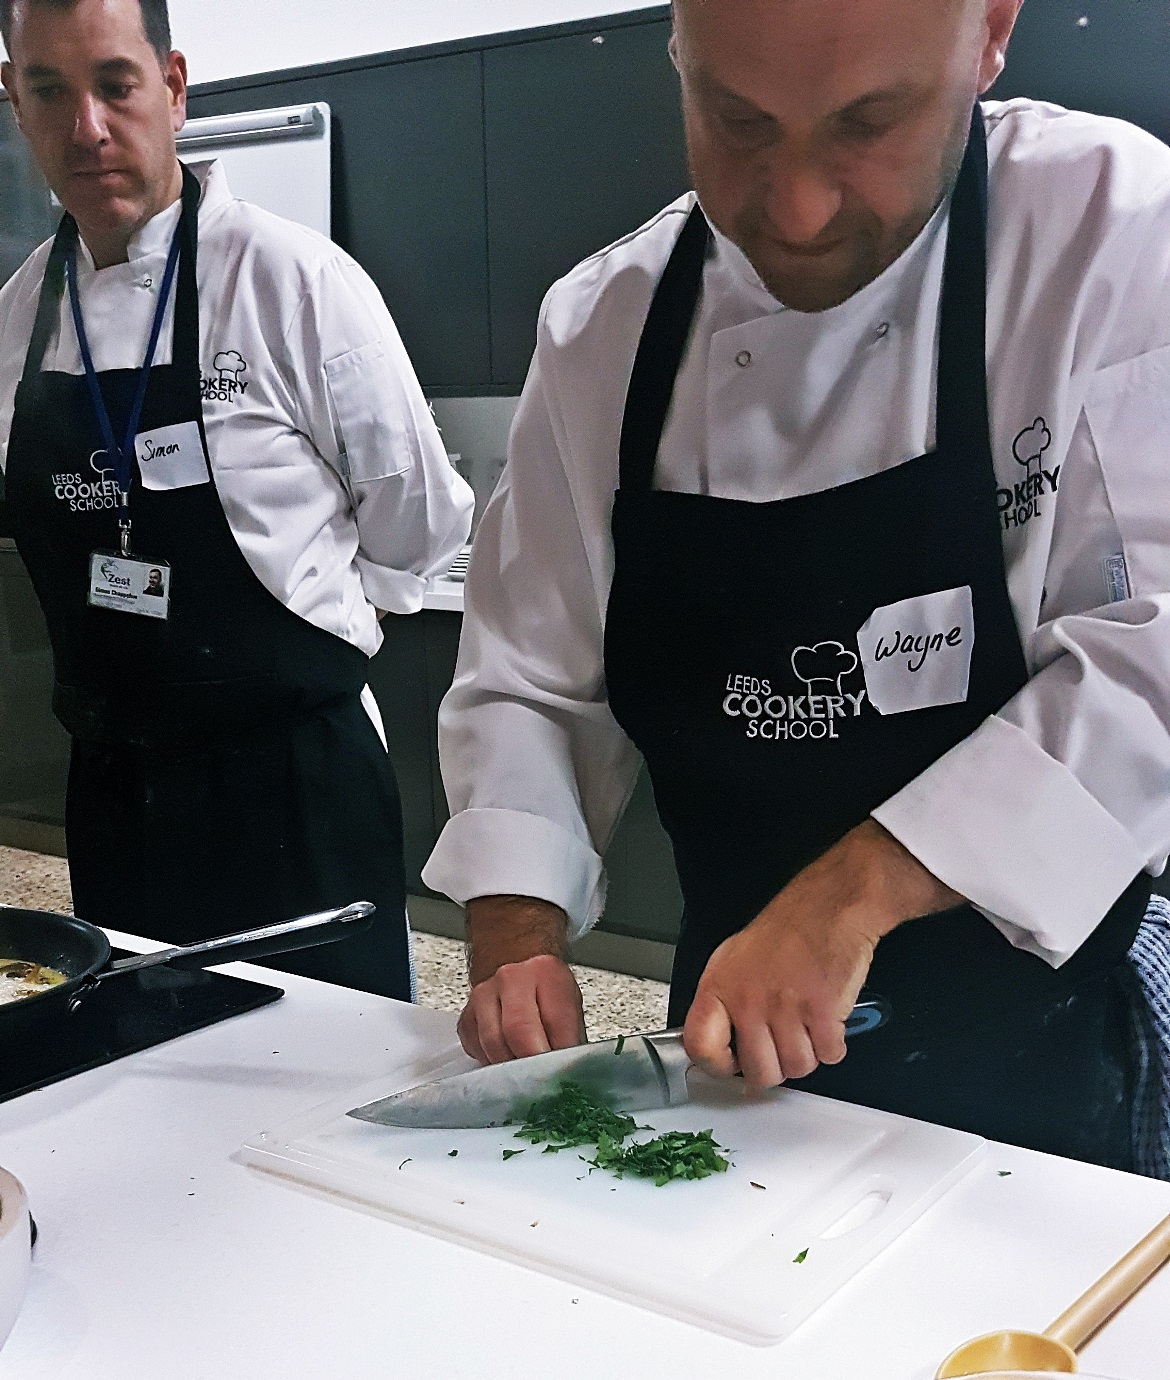 Chopping chives - Leeds Cookery School review by BeckyBecky Blogs